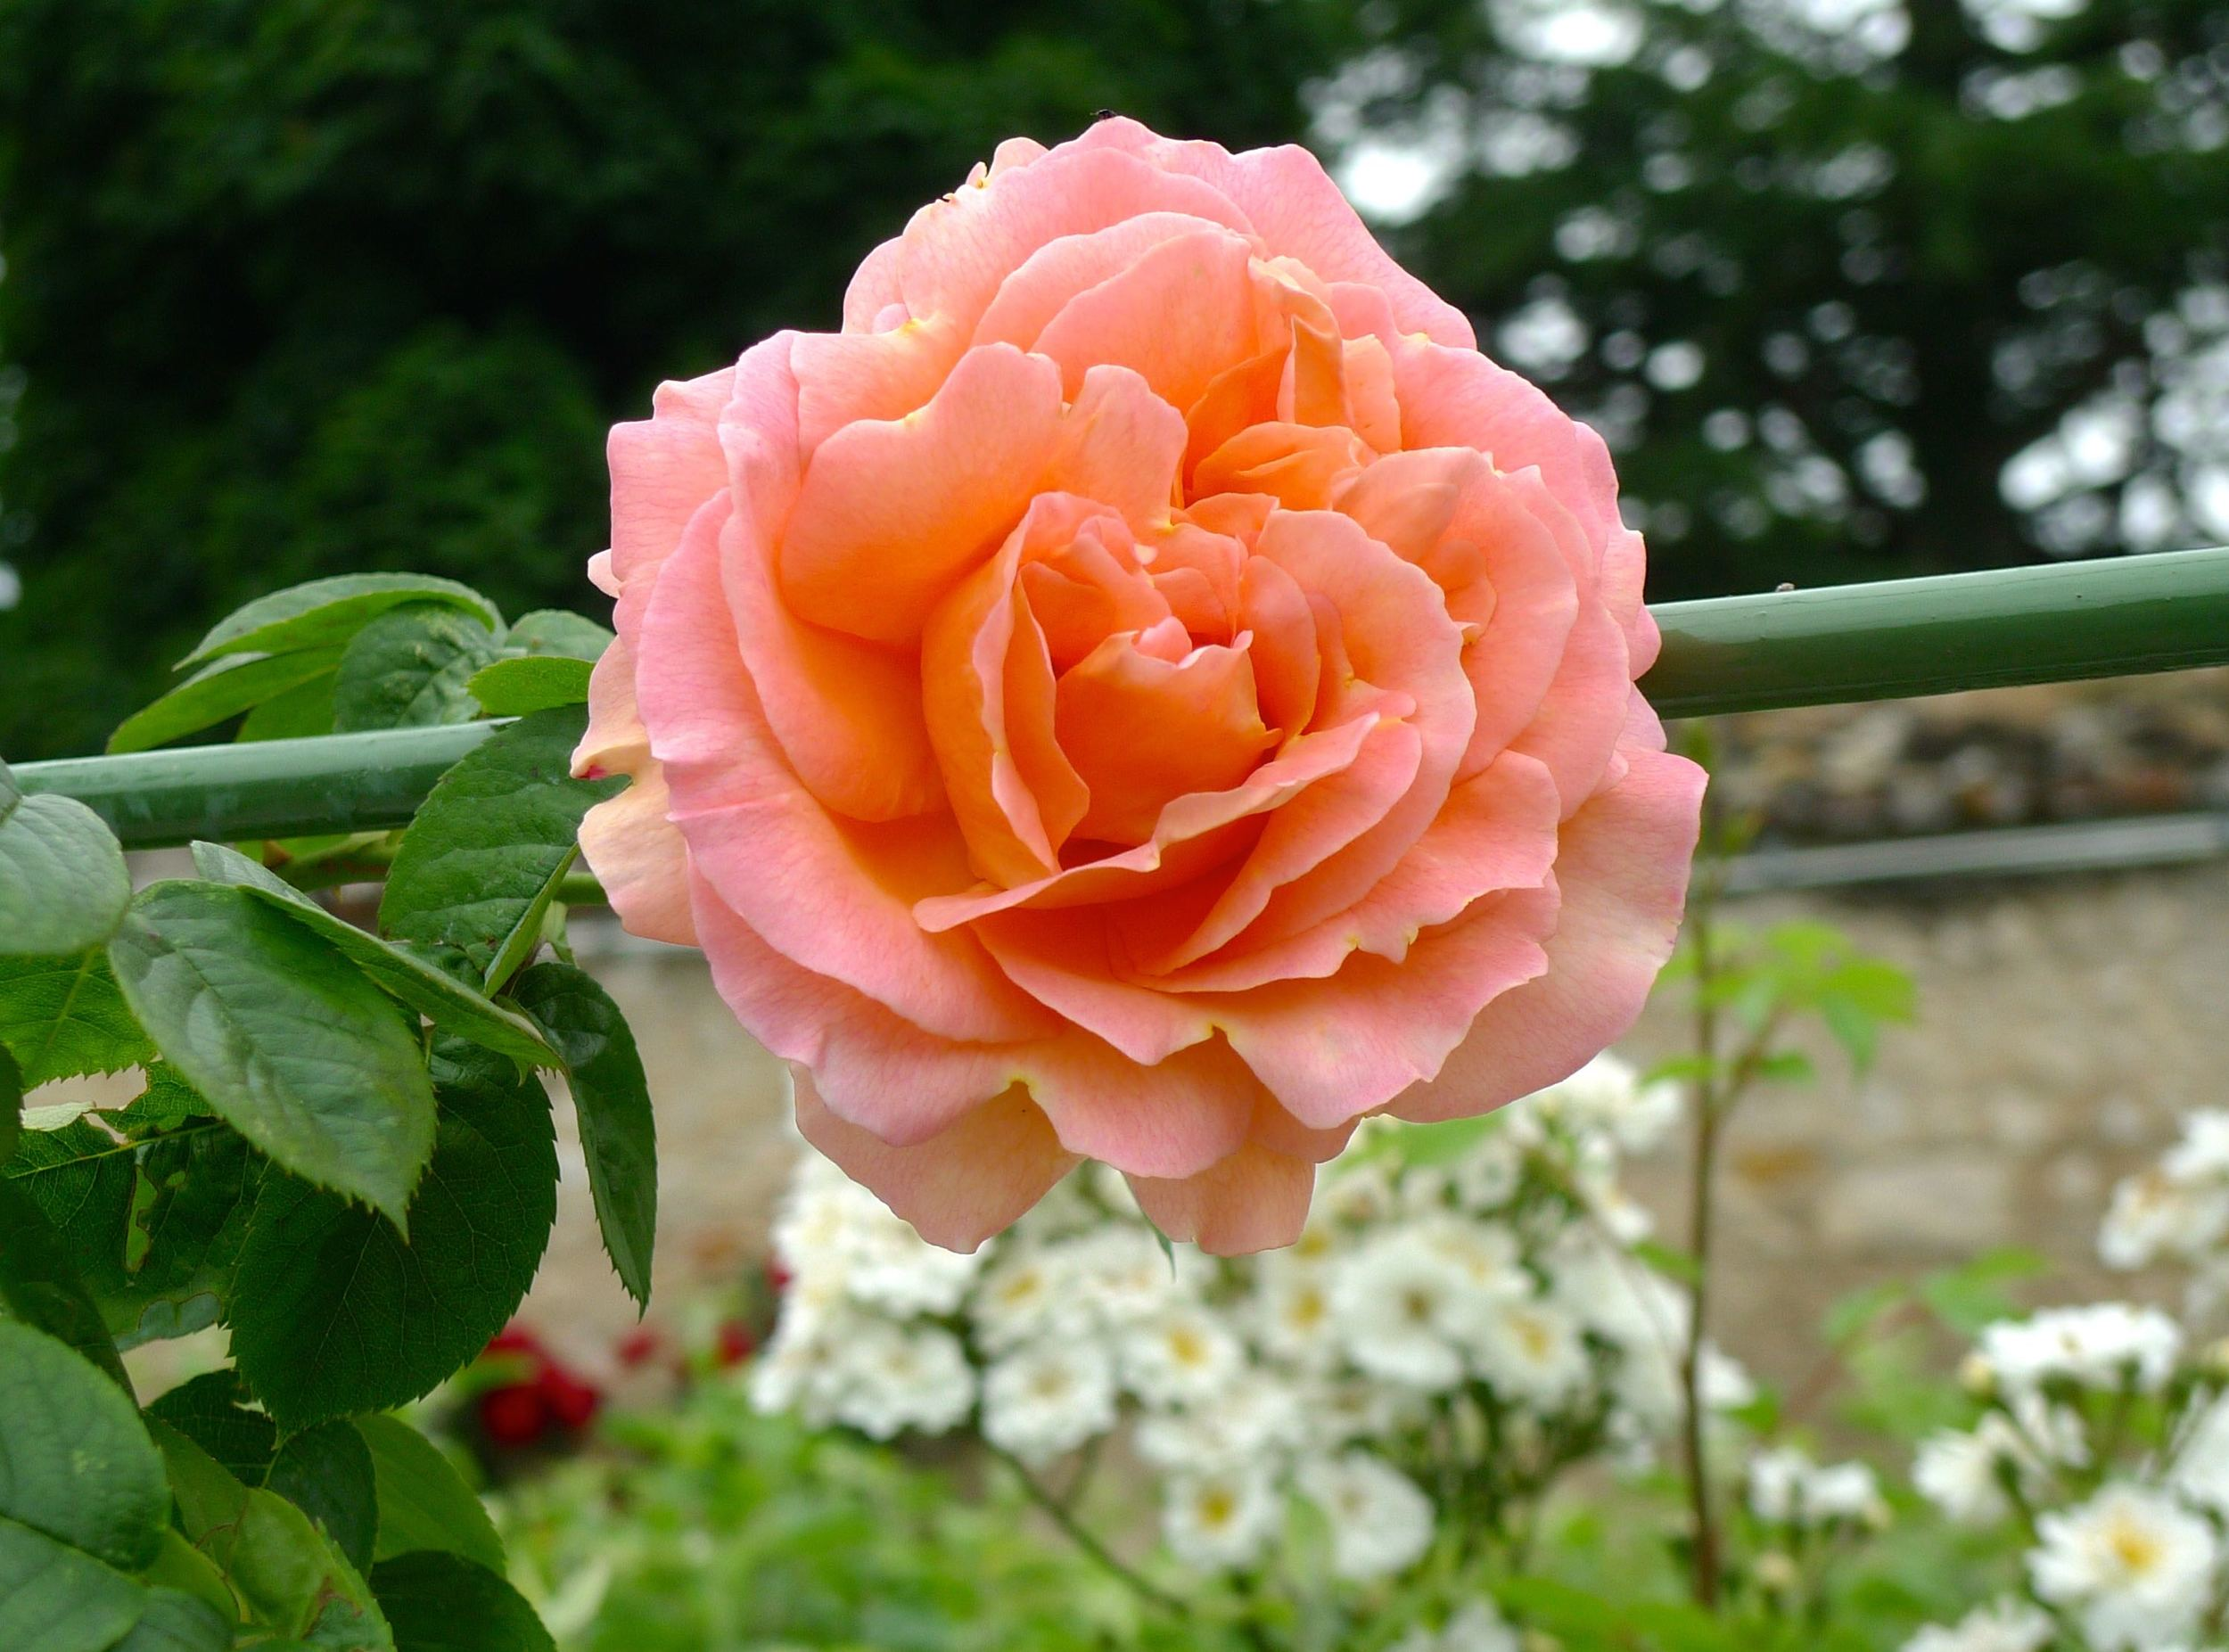 A peach-pink rose clambering along the walkway